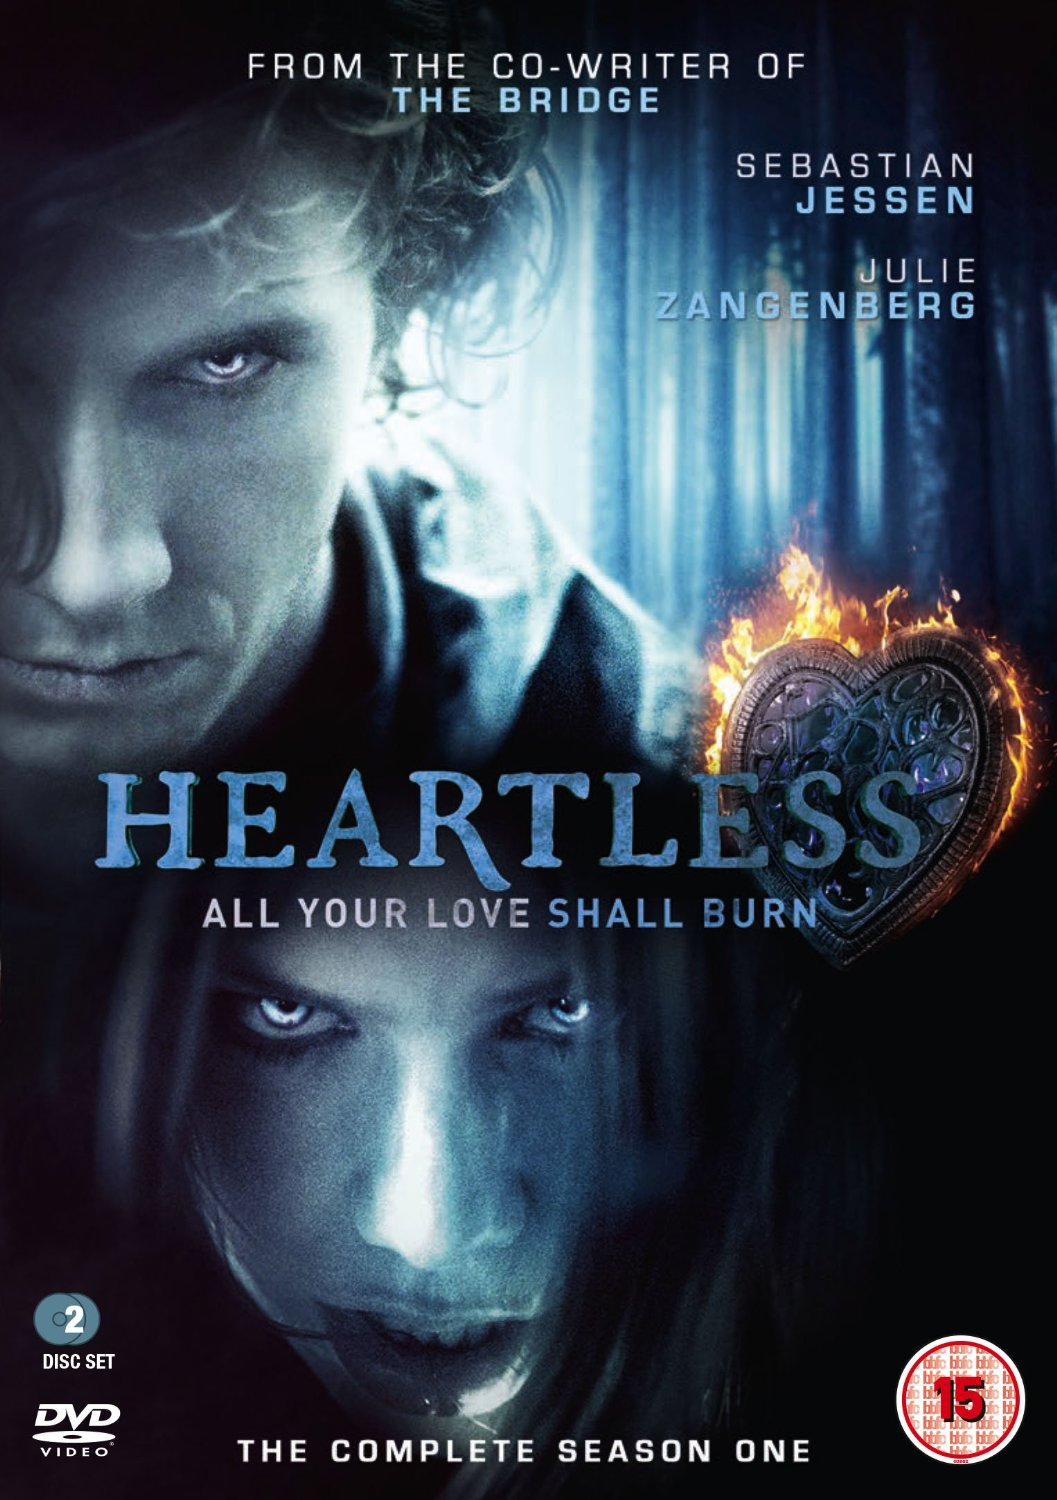 Heartless DVD cover